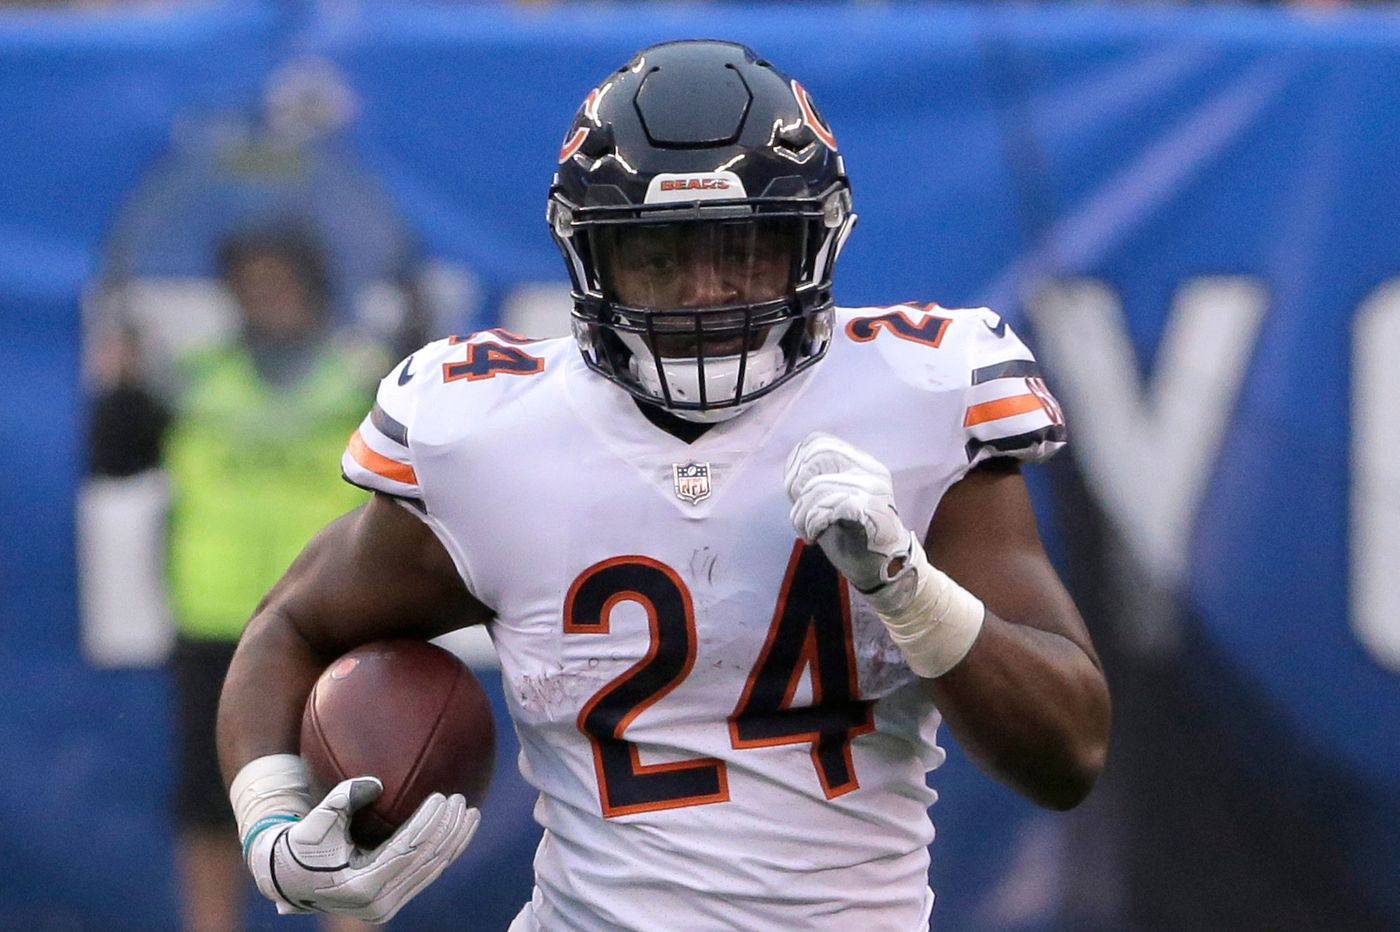 Eagles acquire RB Jordan Howard from Bears for 6th round pick